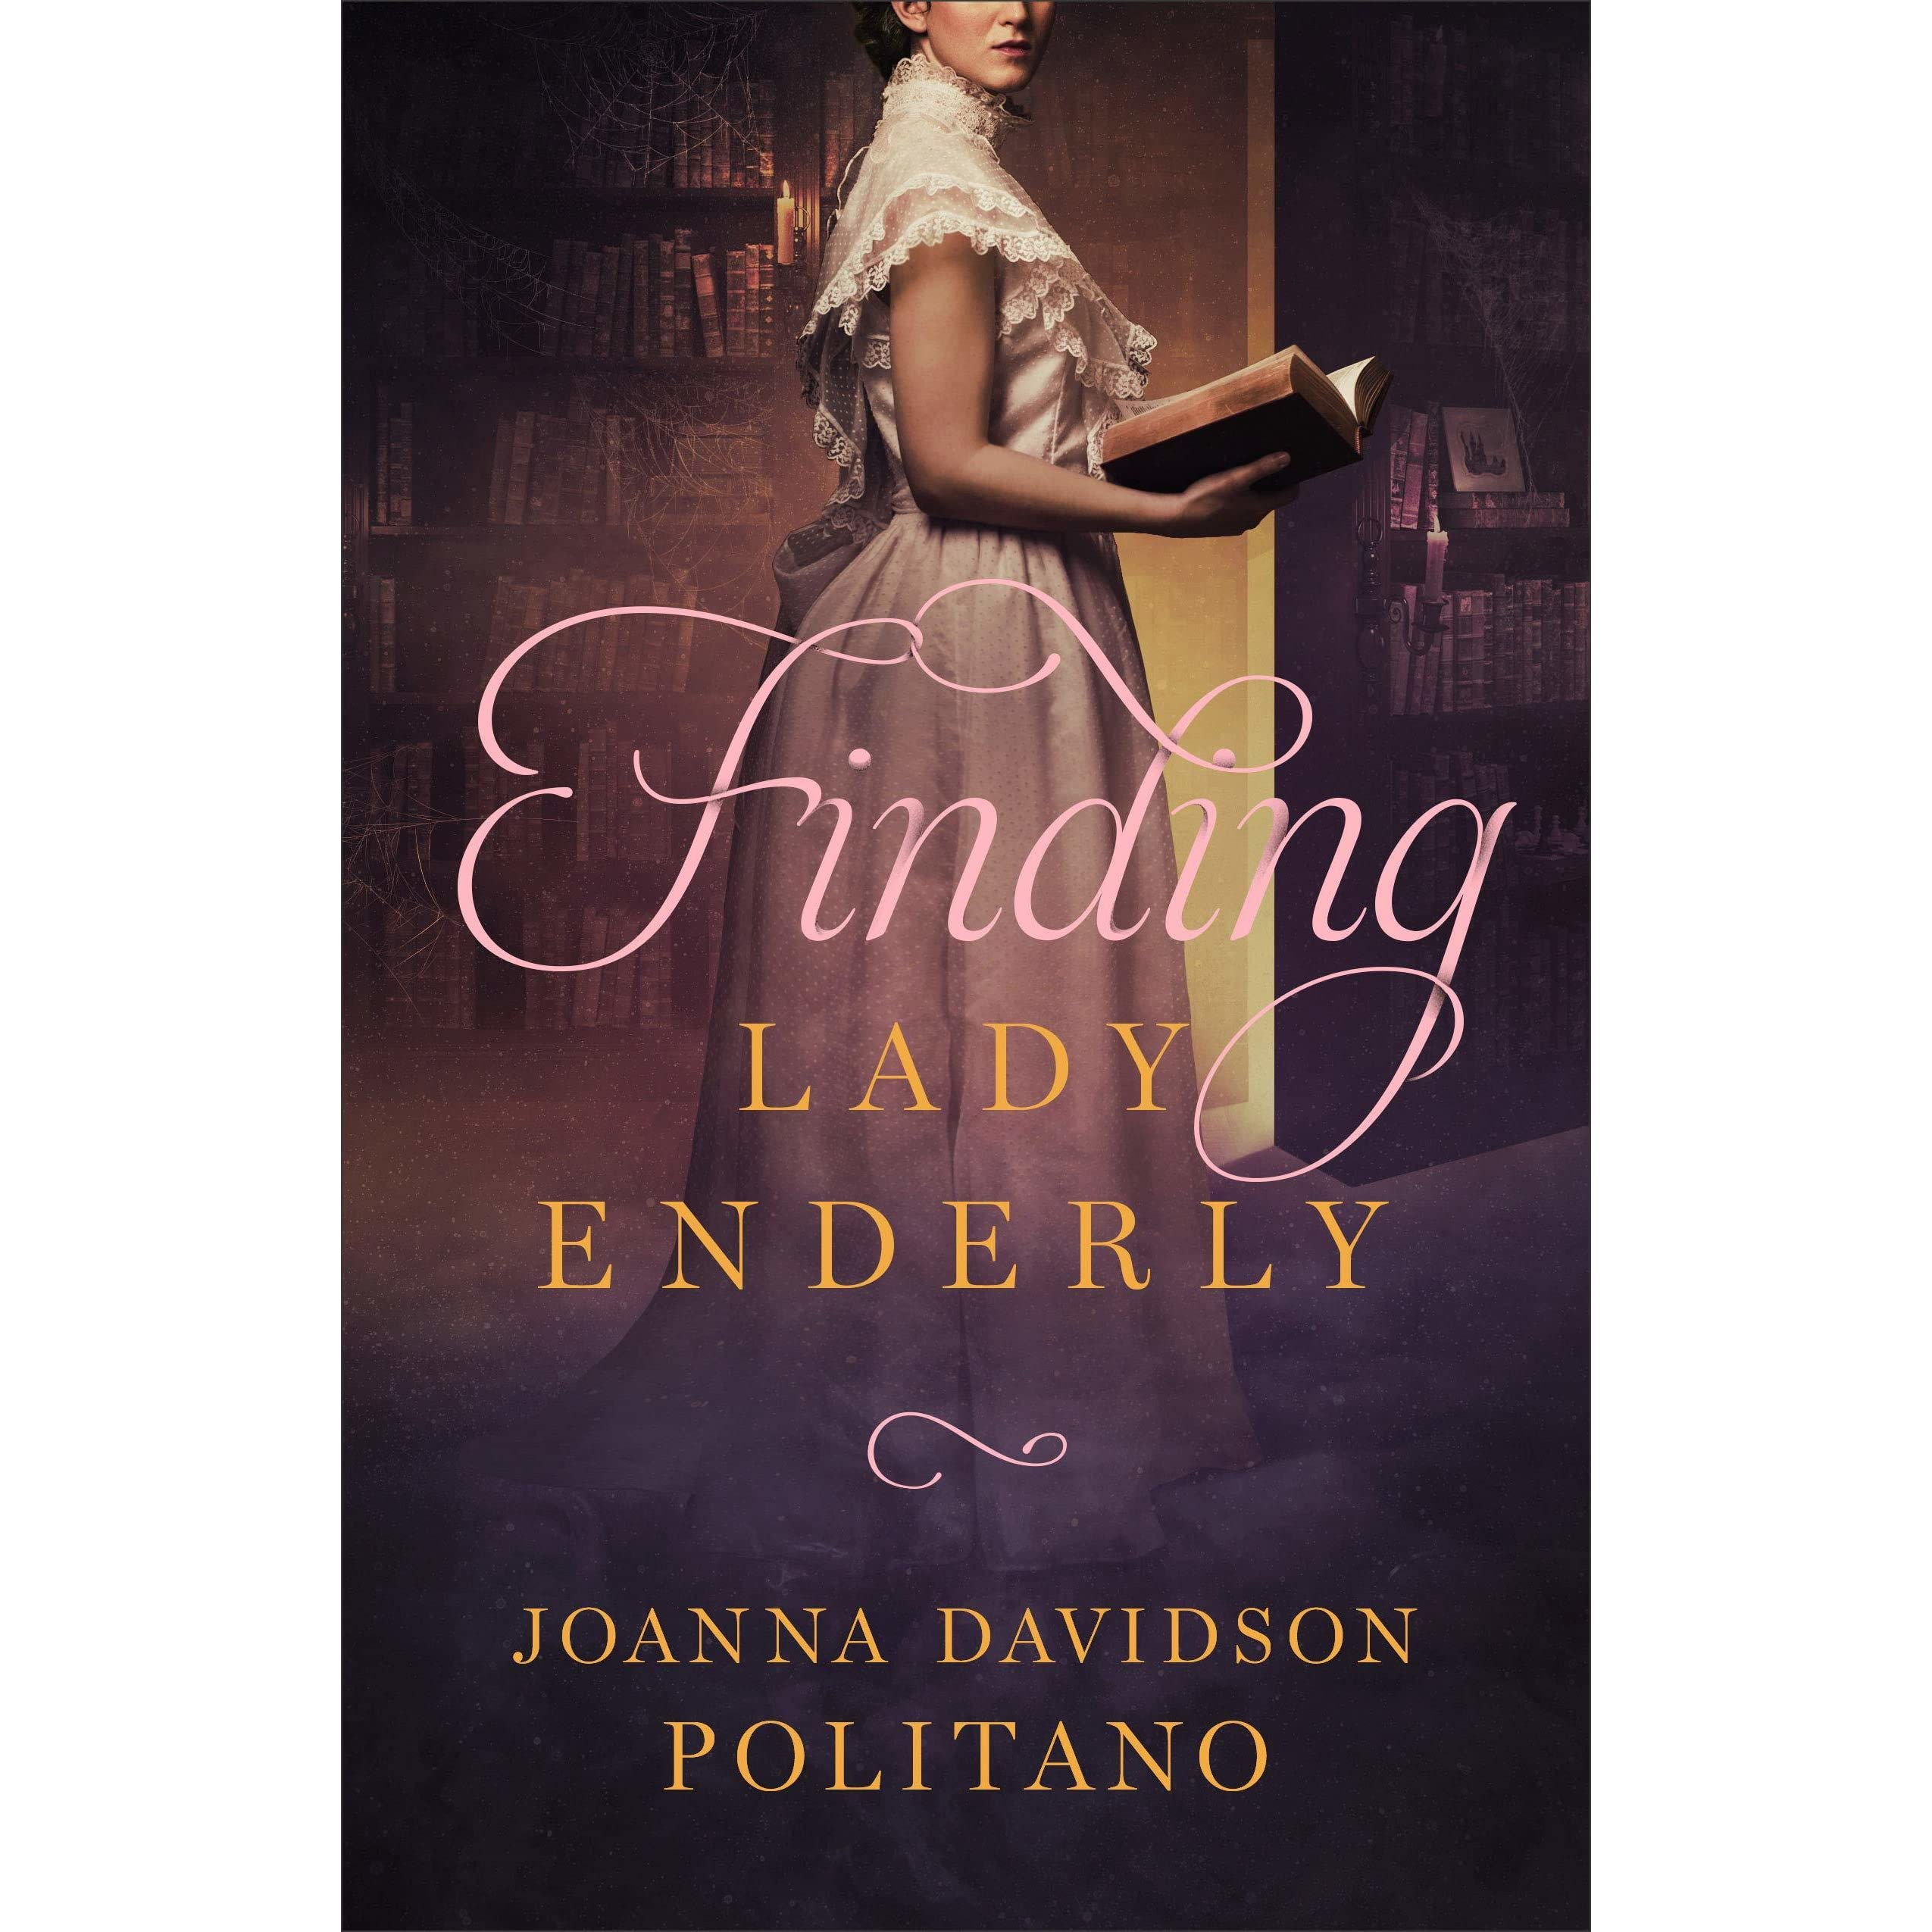 Image result for Finding Lady Enderly by Joanna Davidson Politano